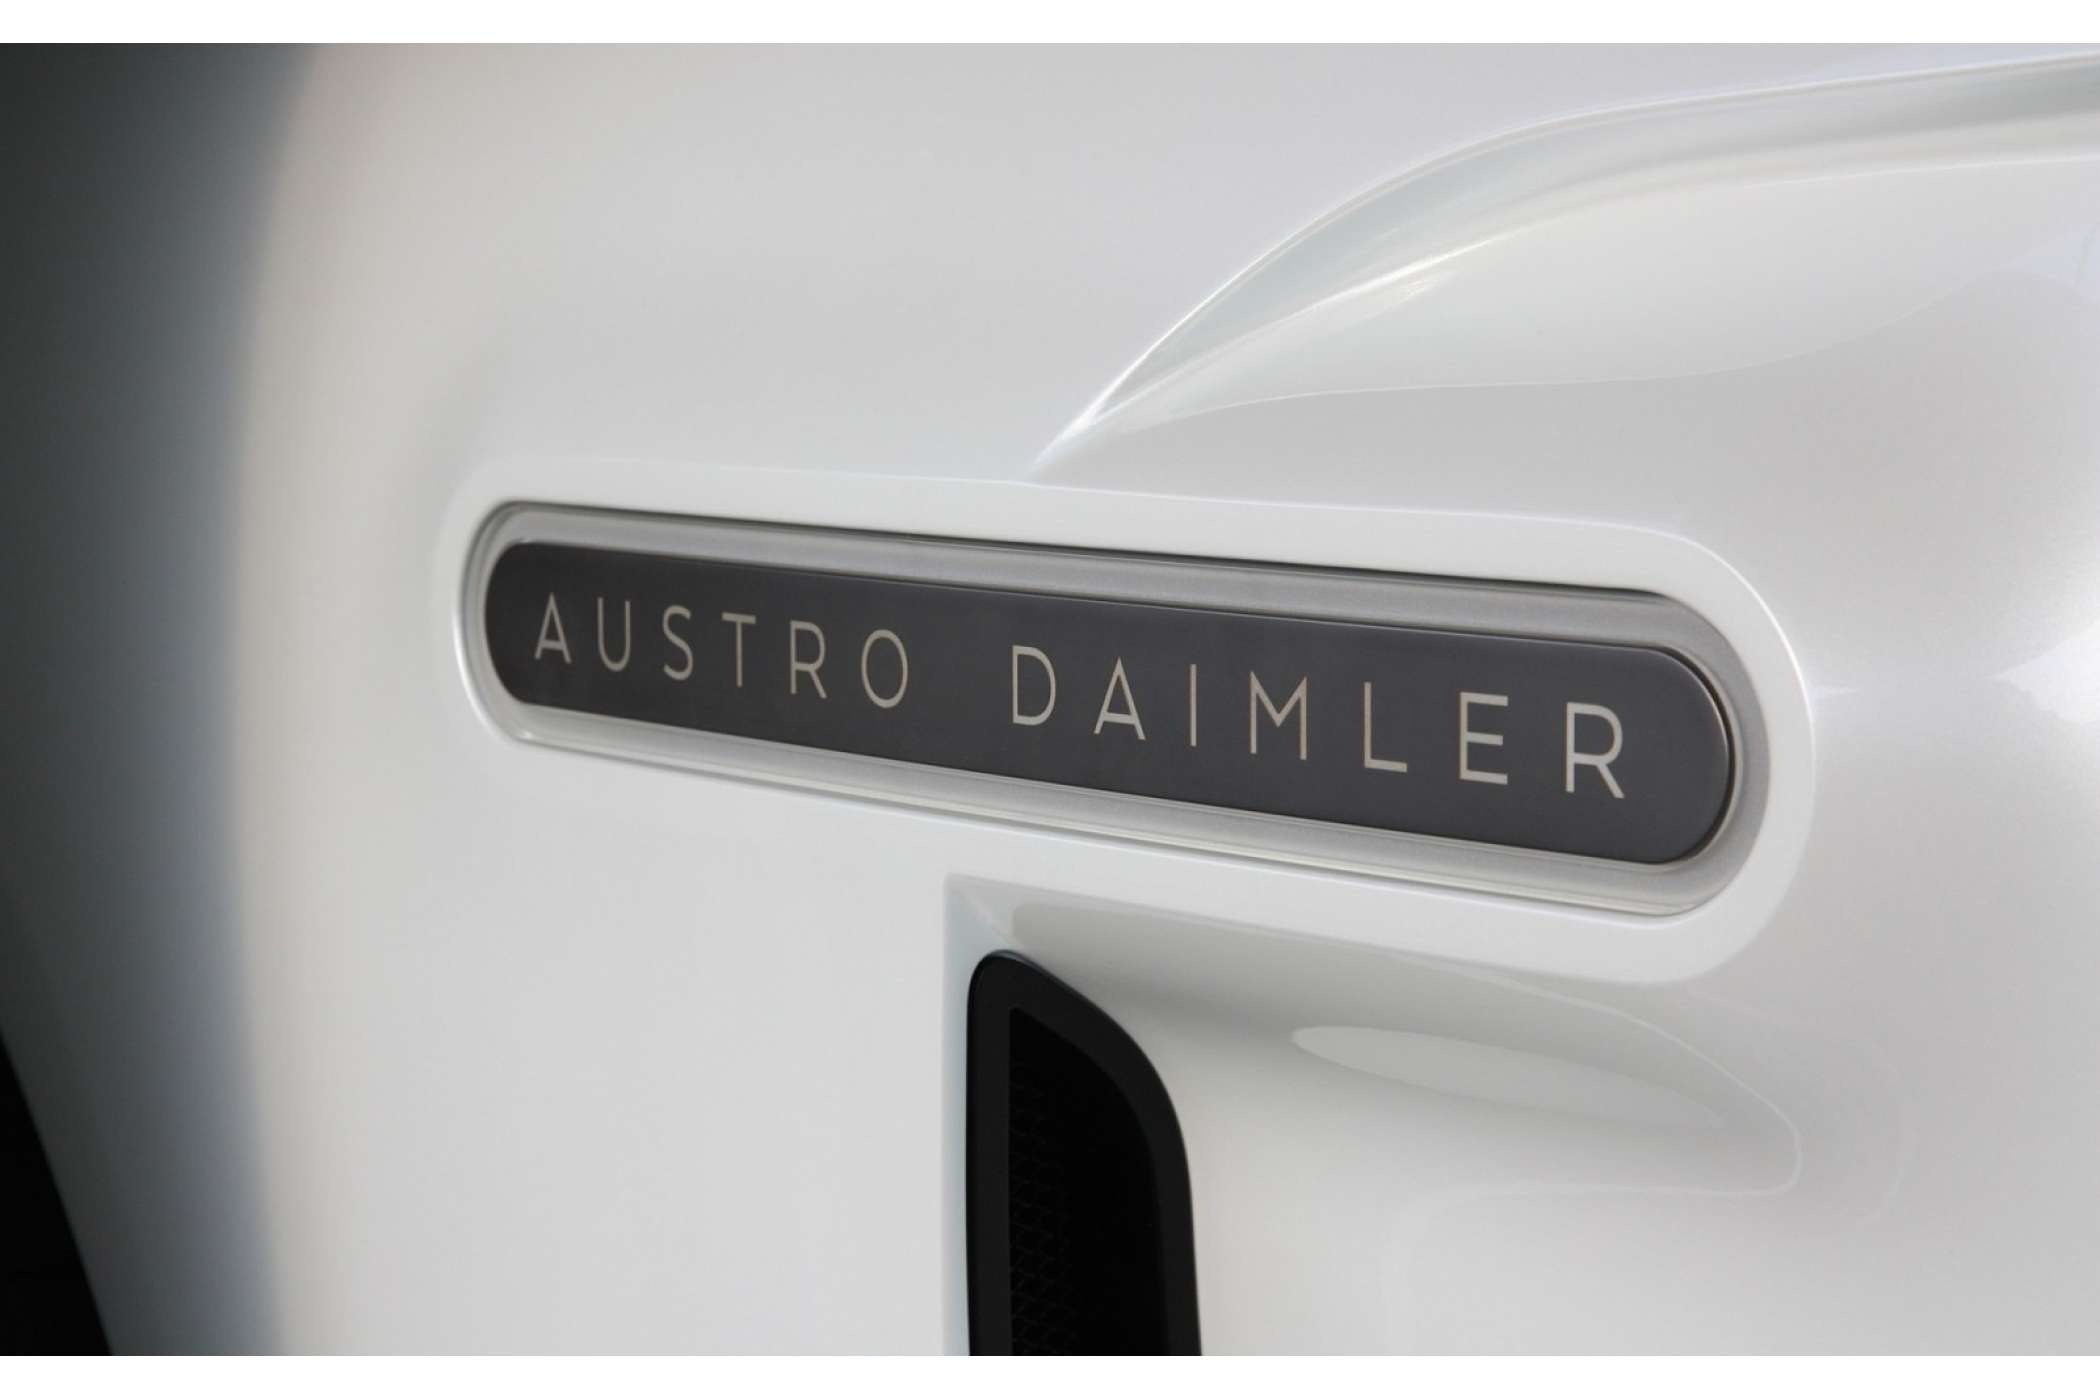 Alter Name, neues Auto. | Foto: Austro Daimler